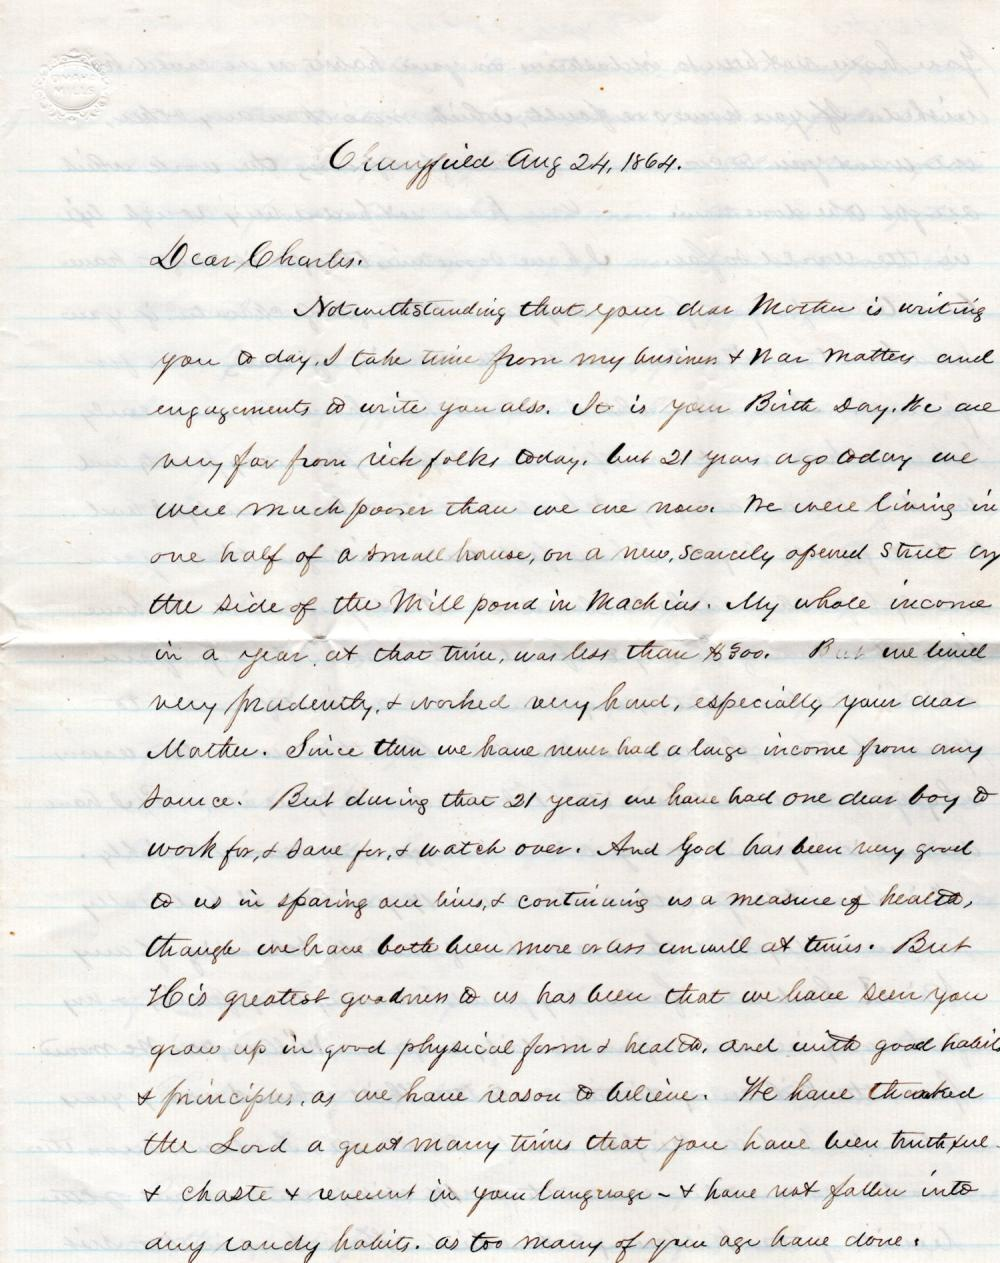 Letter in support of the Colored Troops, 1864